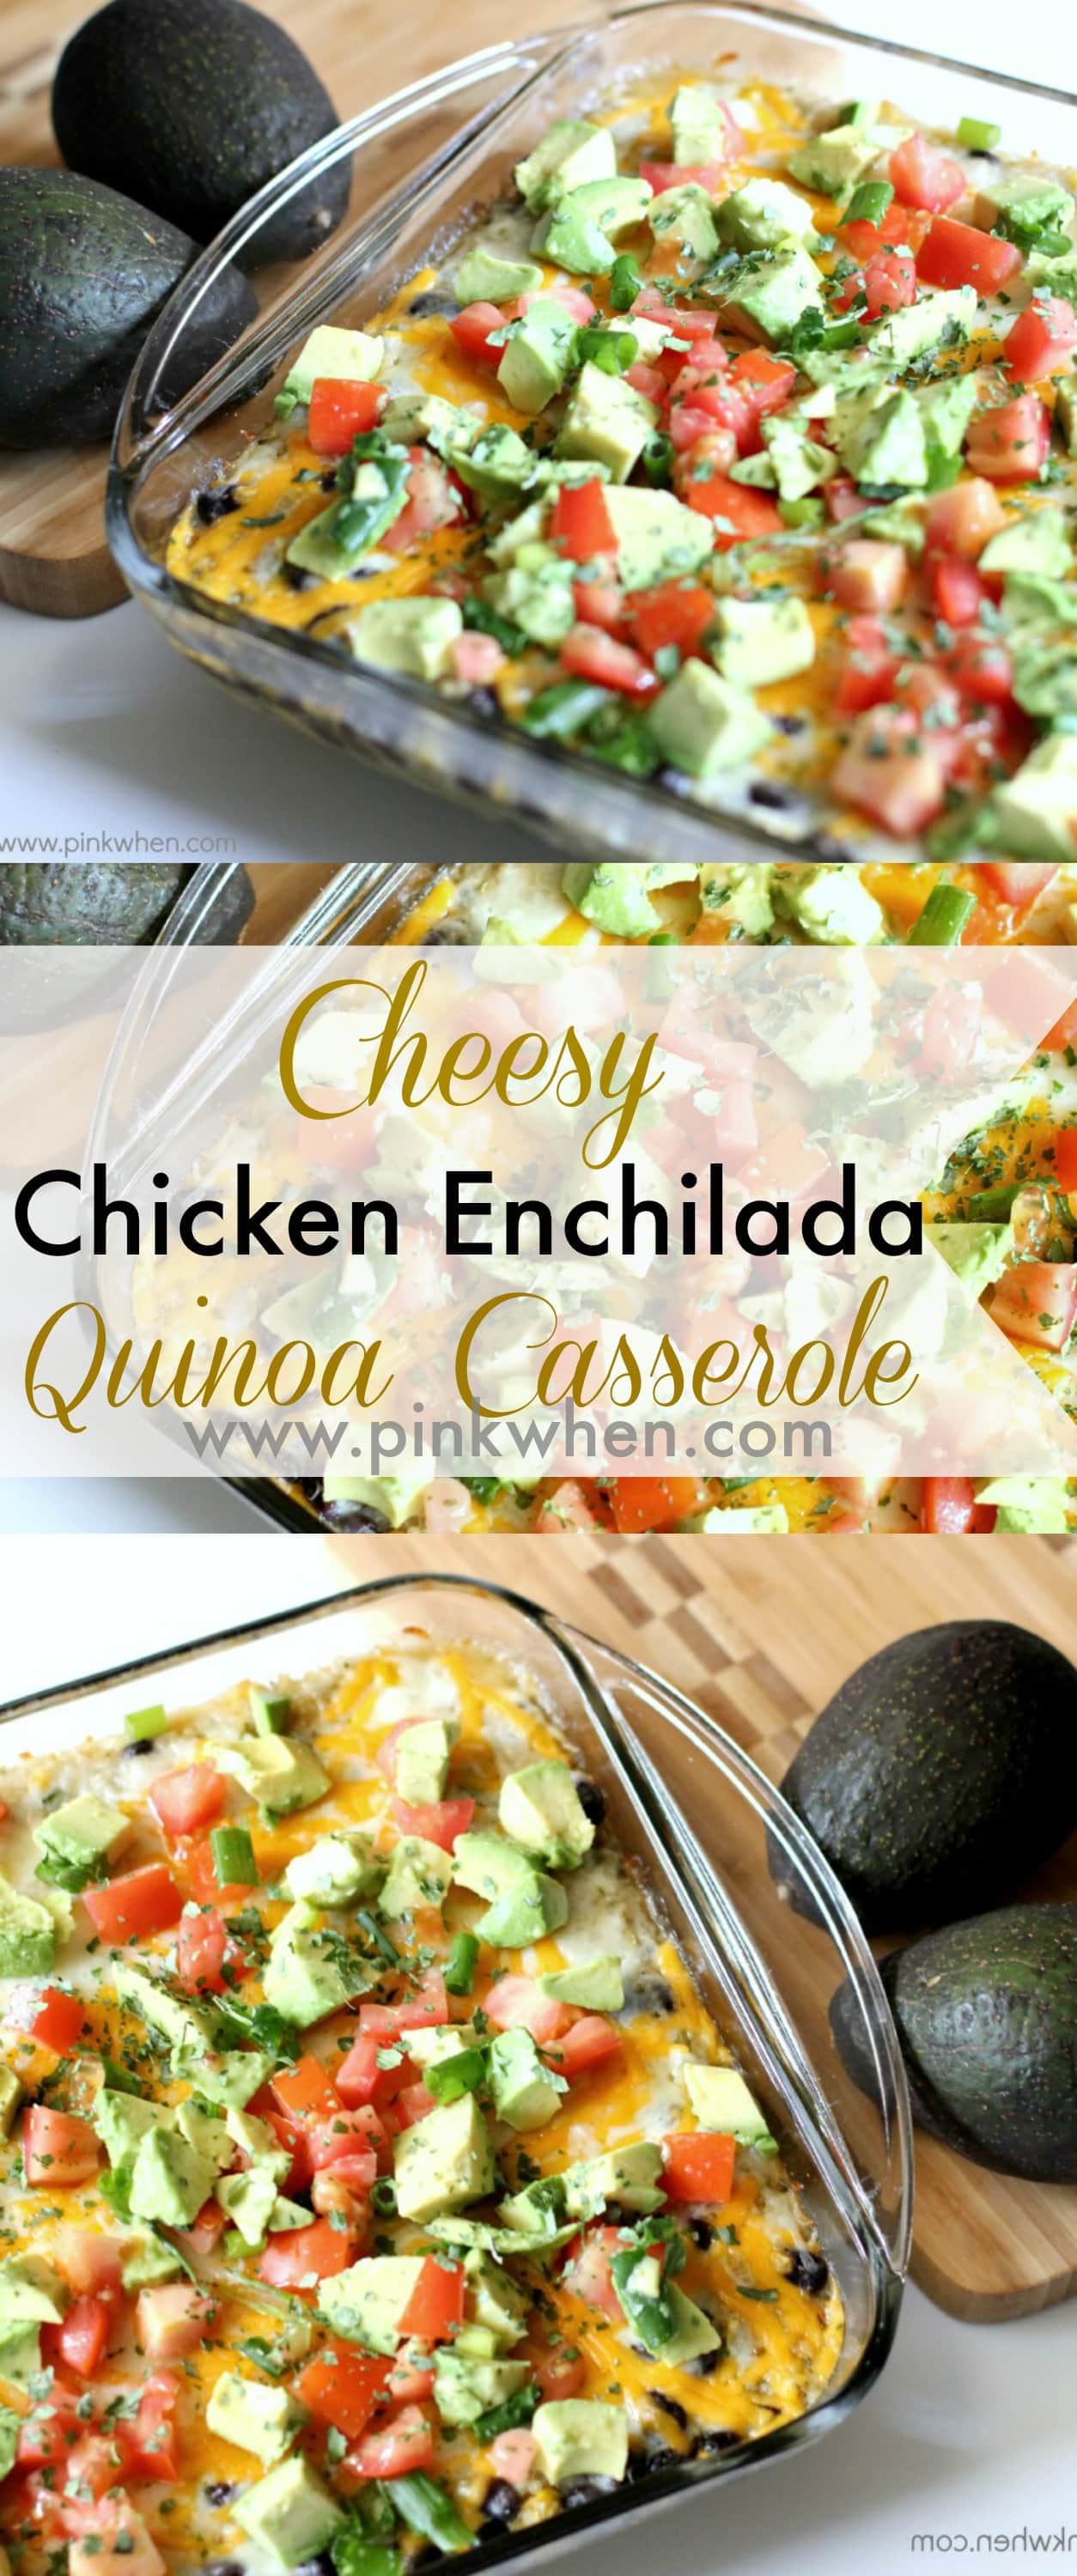 Cheesy Chicken Enchilada Quinoa Casserole Recipe www.pinkwhen.com